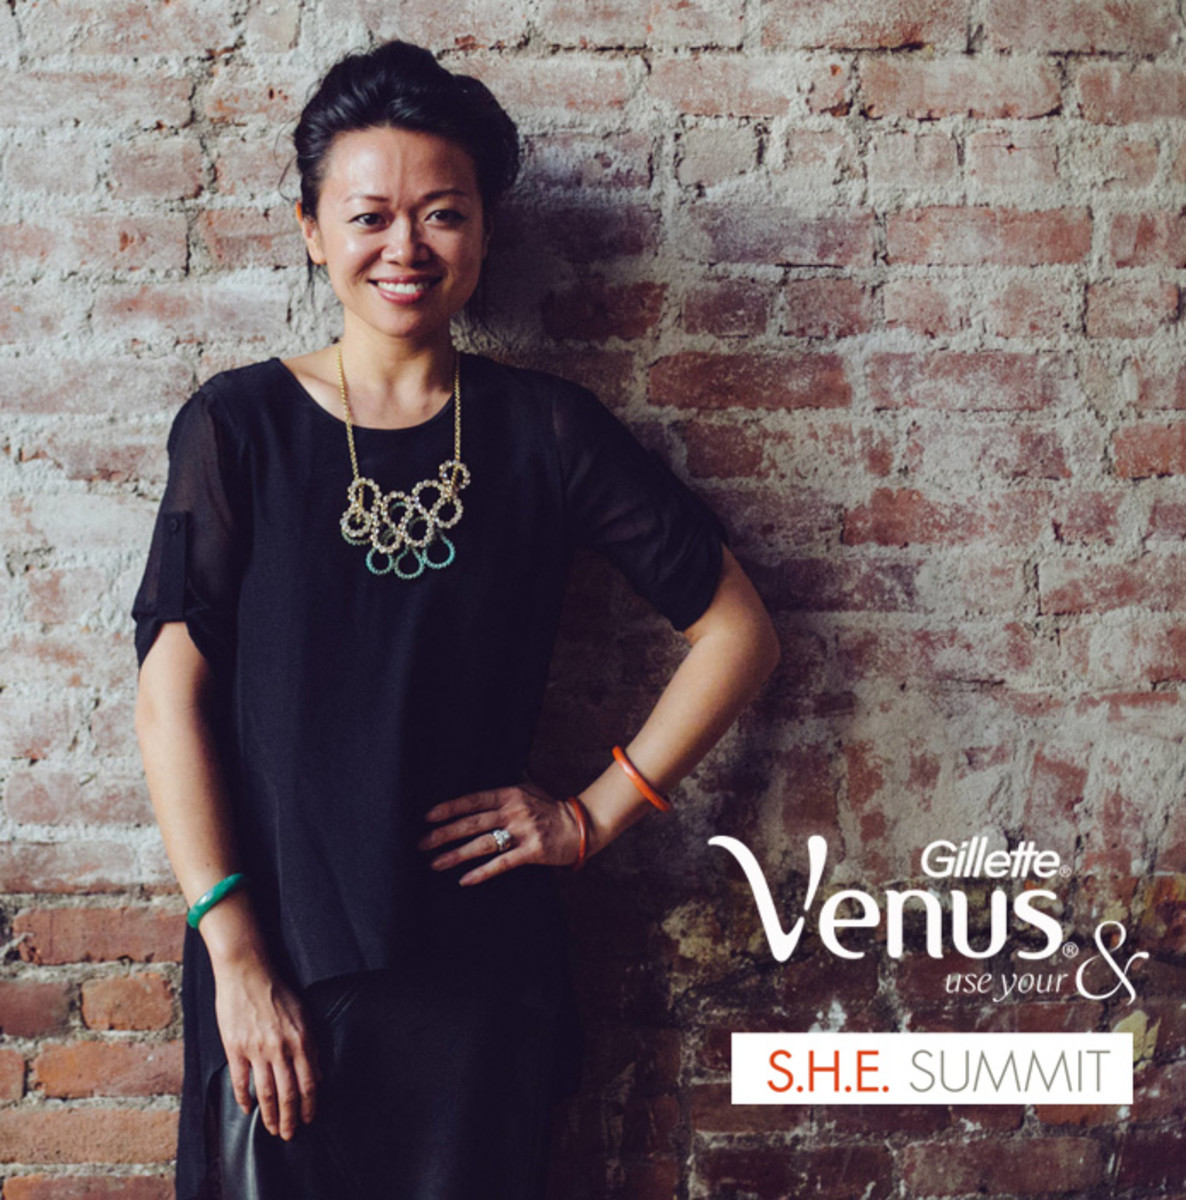 SHE Summit 2013